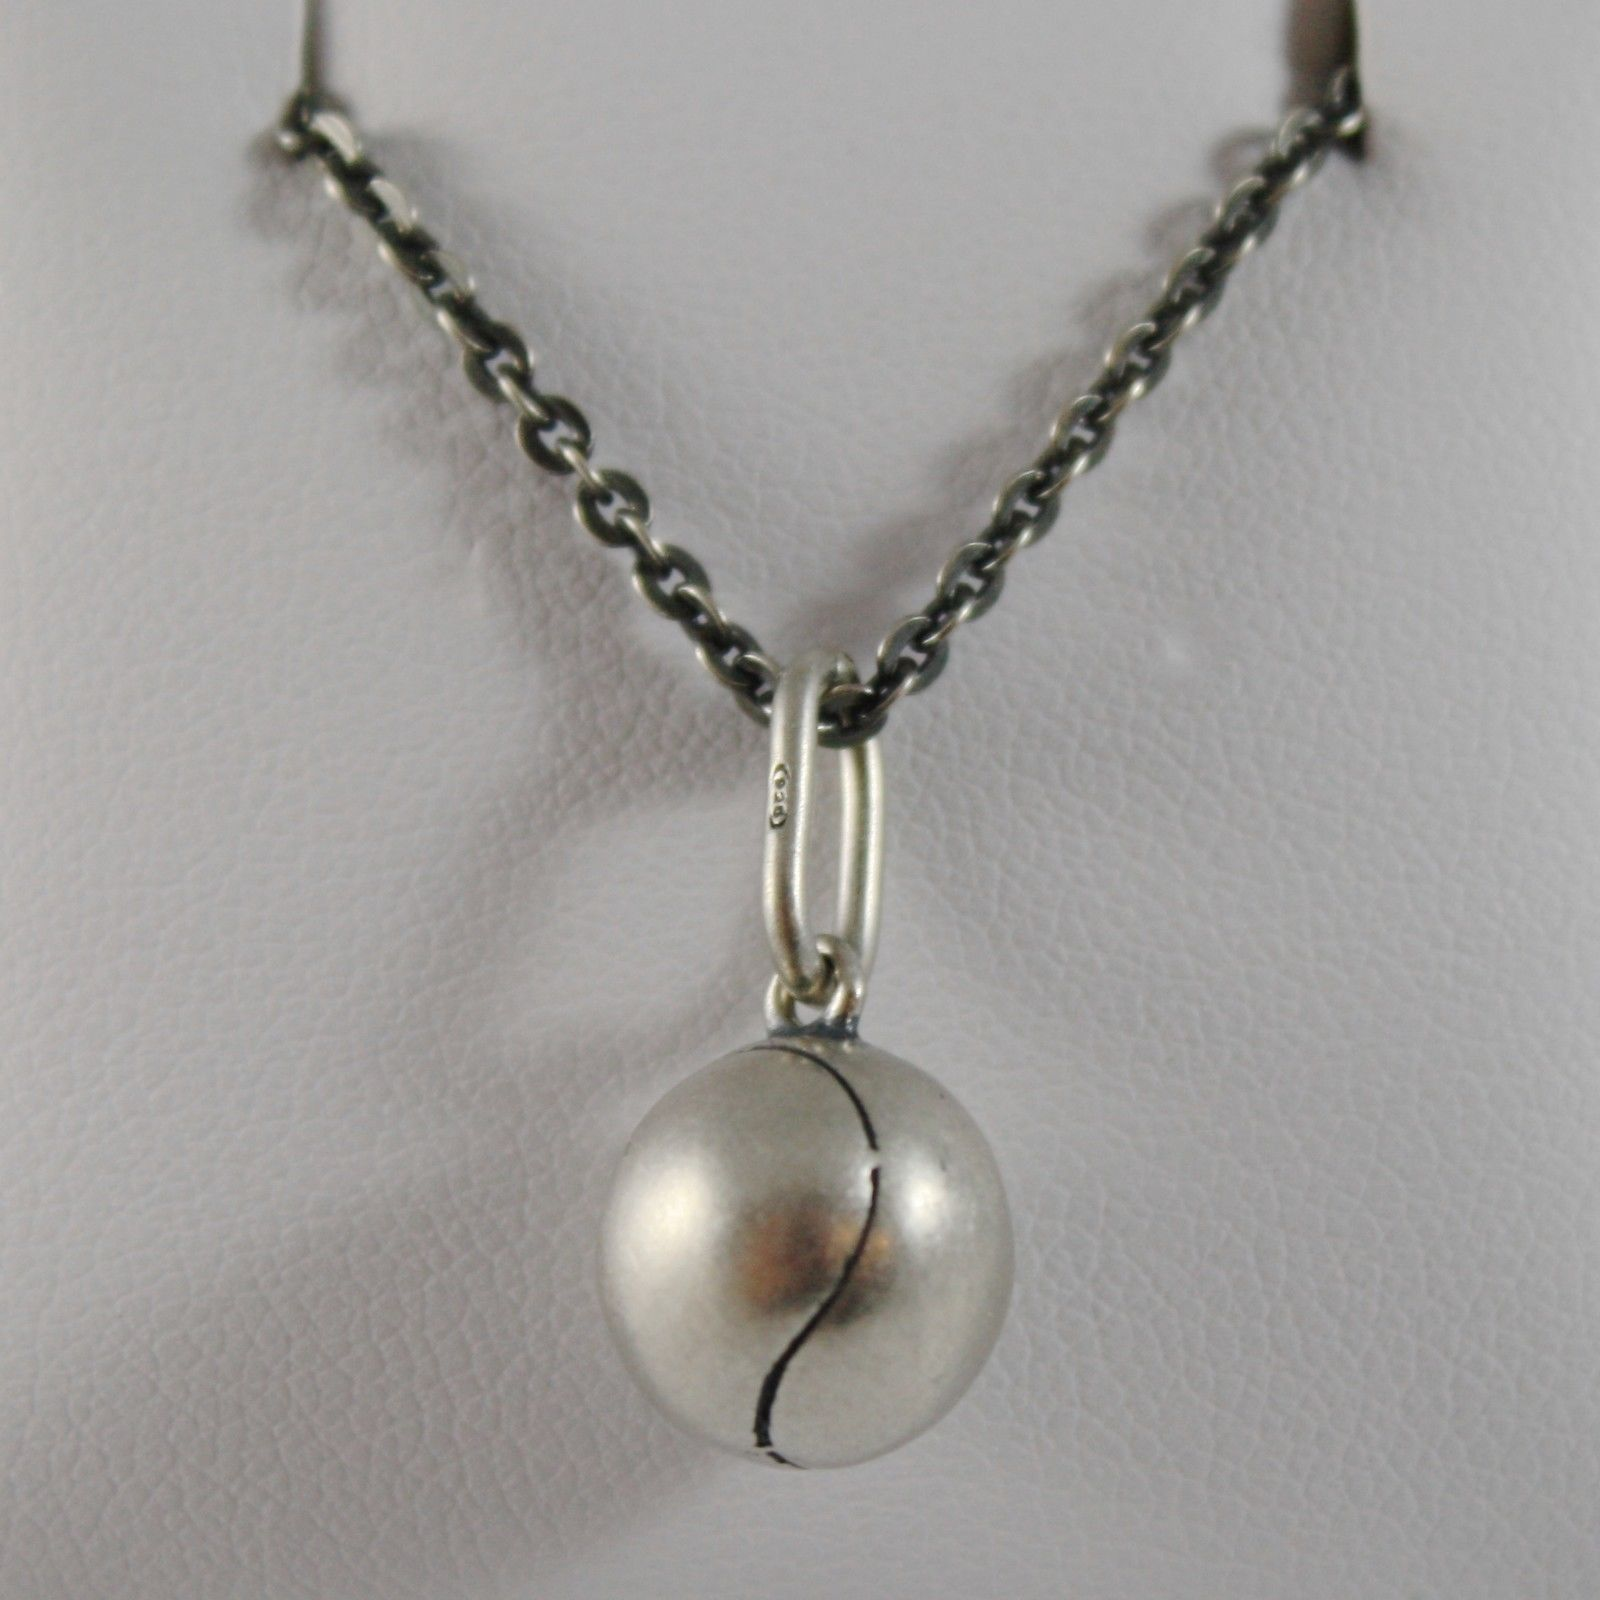 925 STERLING SILVER NECKLACE BURNISHED PENDANT A GOLF BALL TENNIS MADE IN ITALY